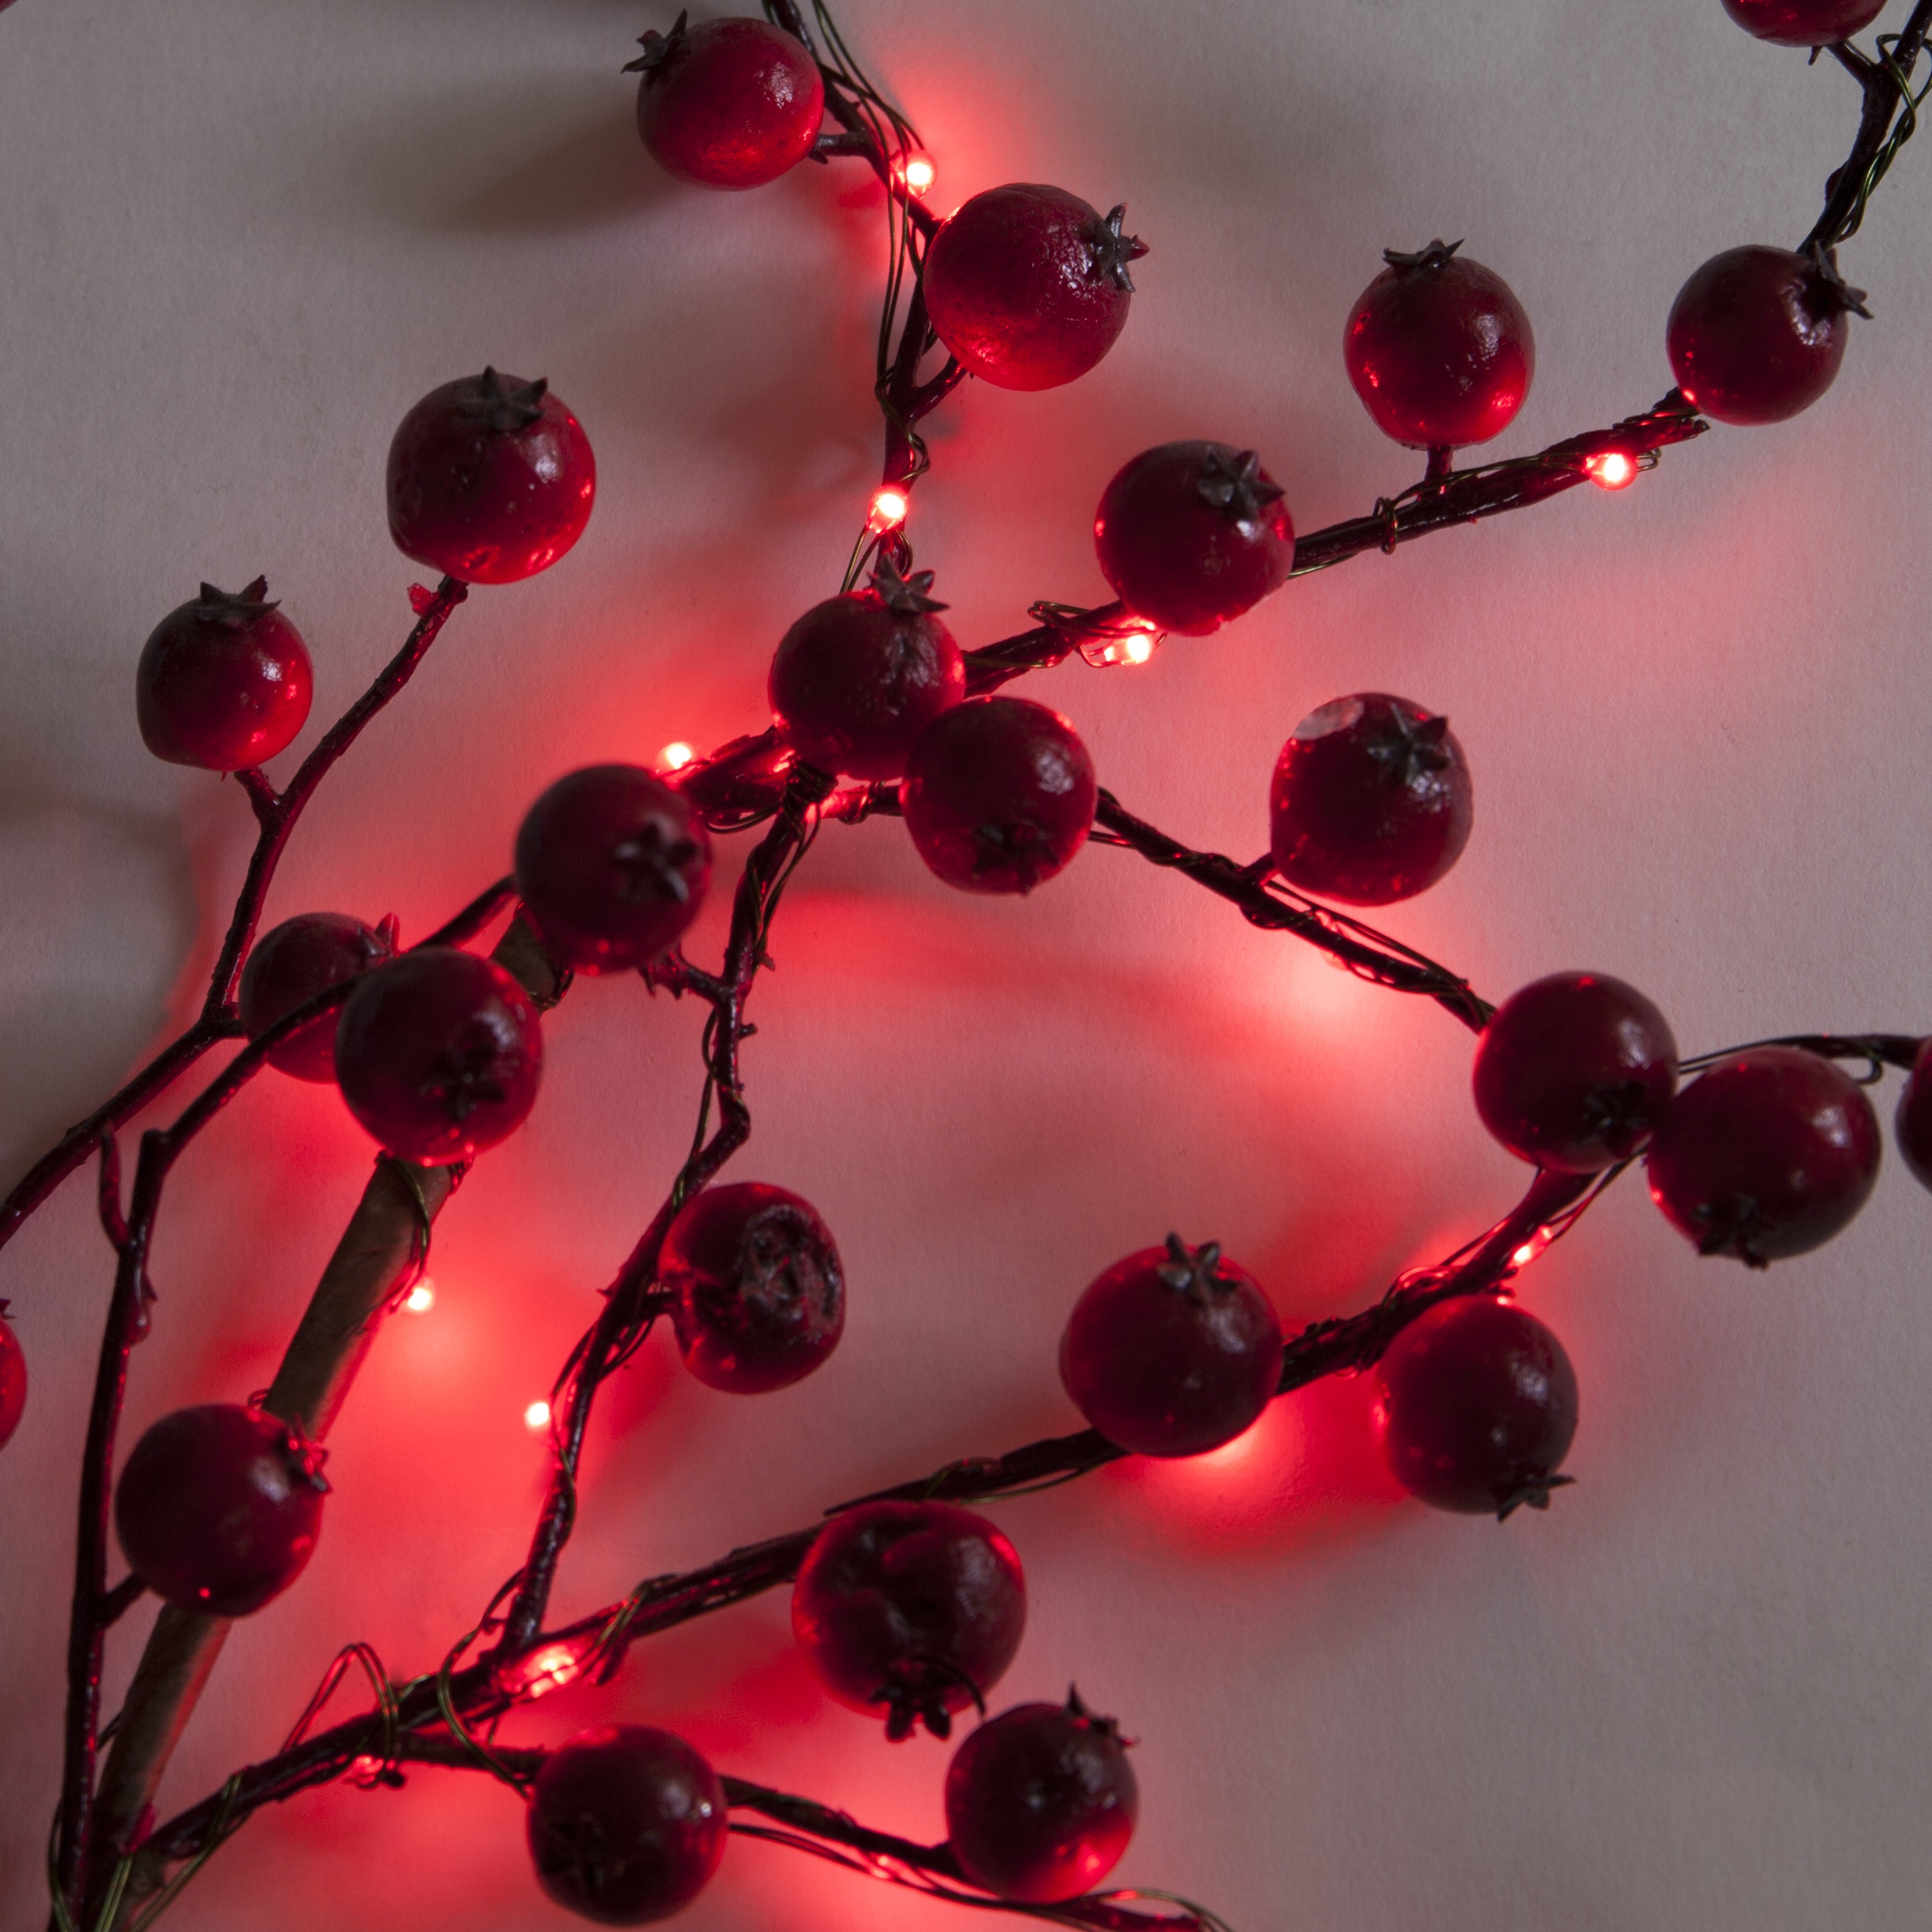 Red Fairy Lights Wrapped Around Branch with Berries